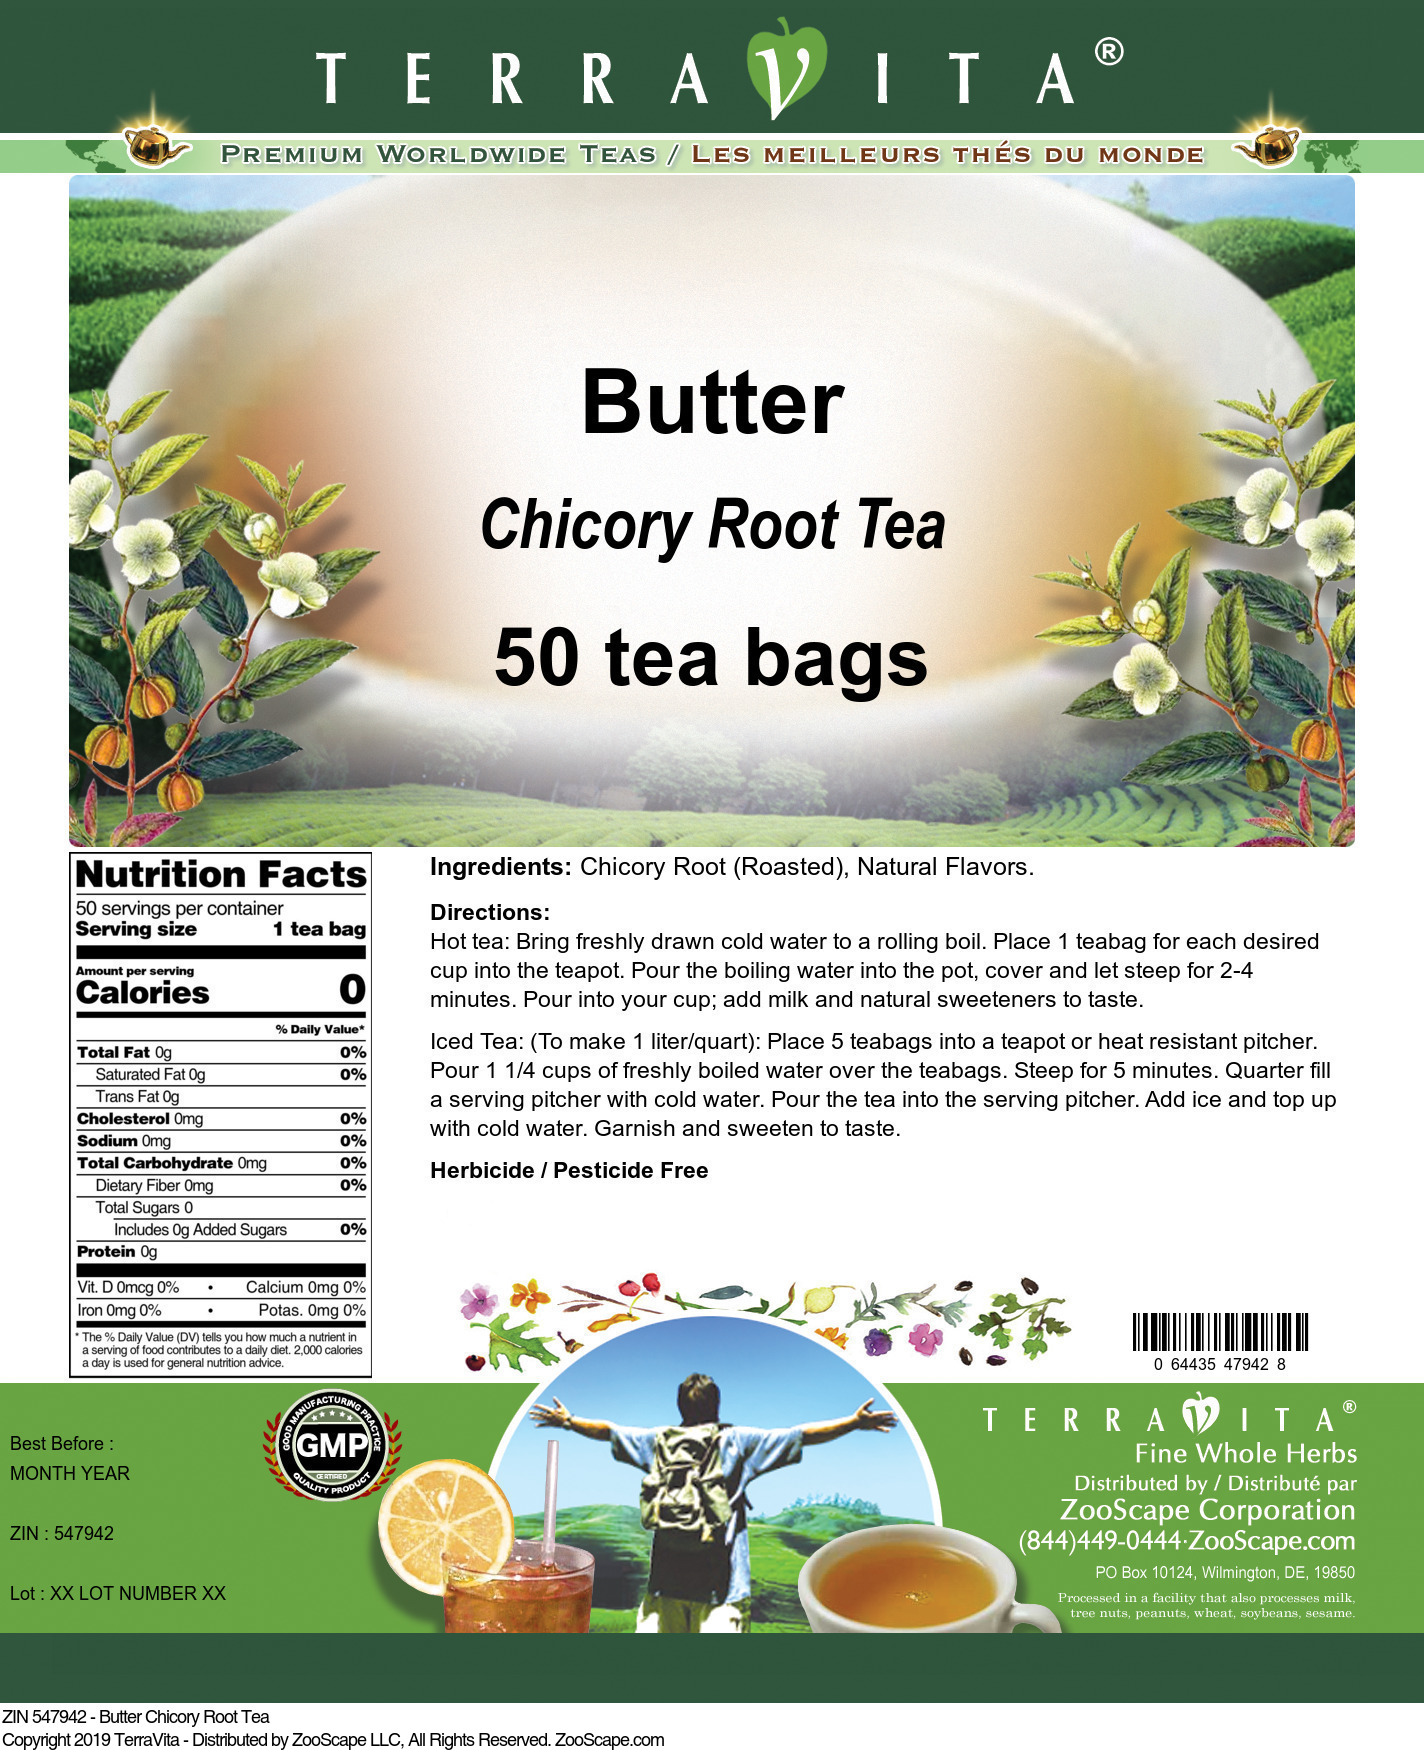 Butter Chicory Root Tea